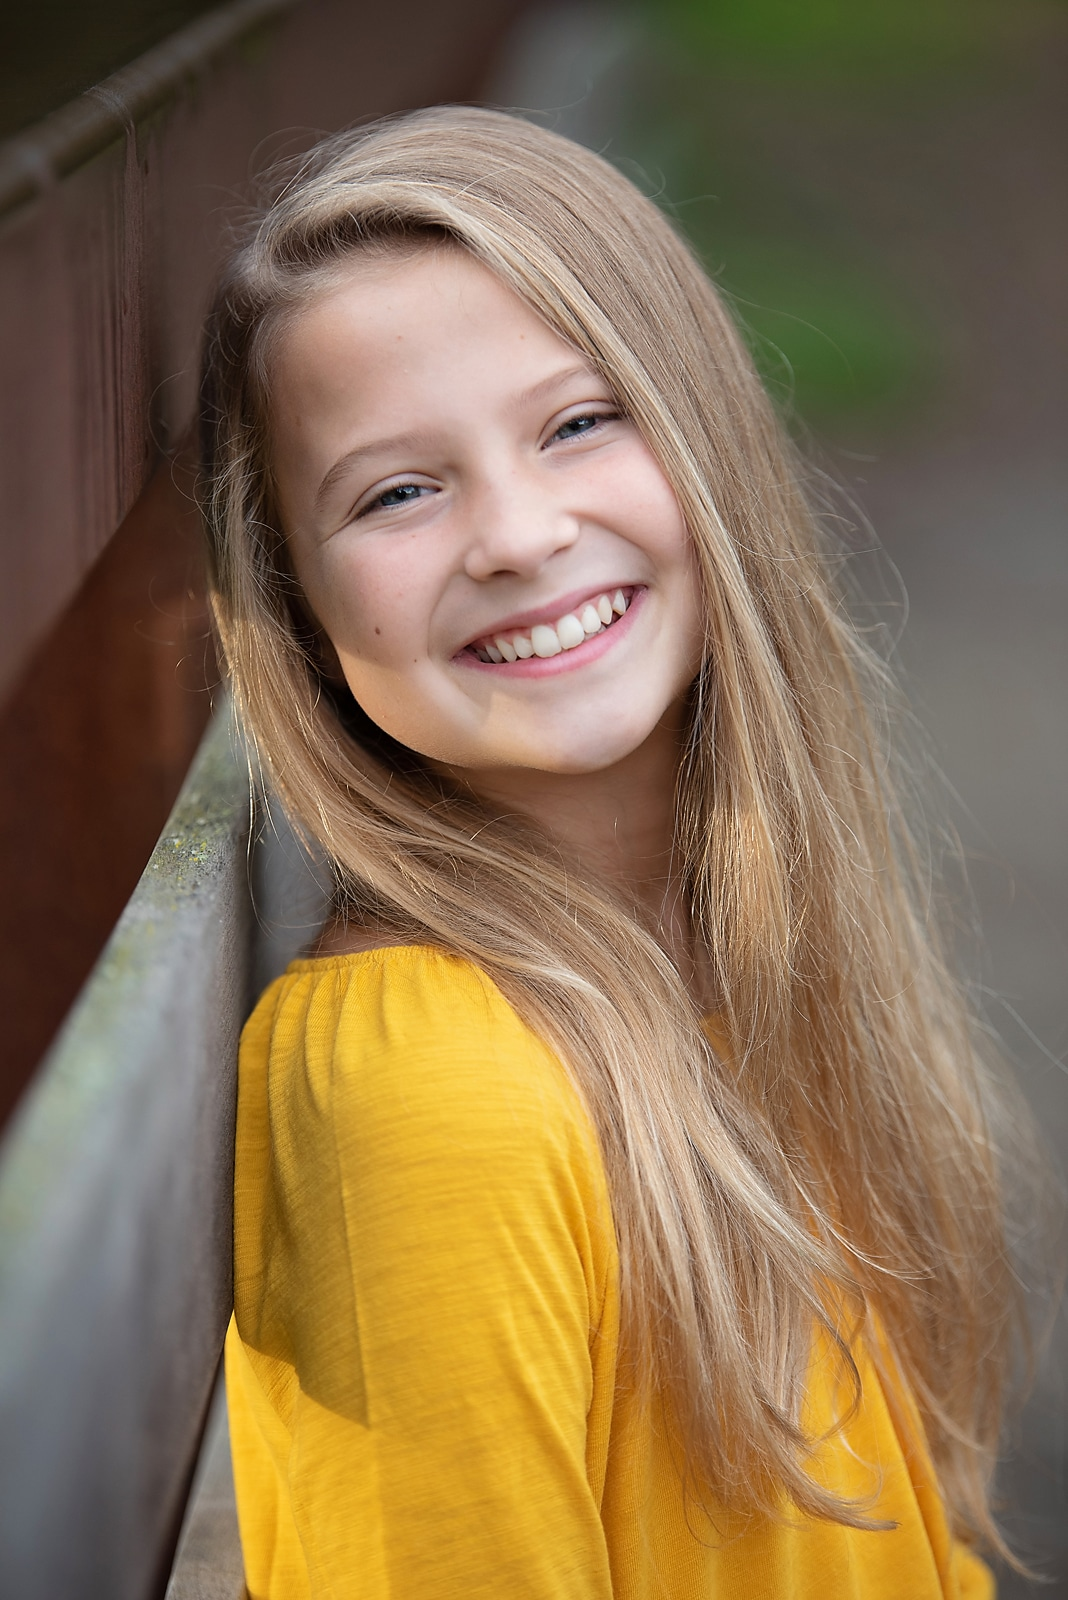 Bridge picture of Sister smiling with yellow shirt